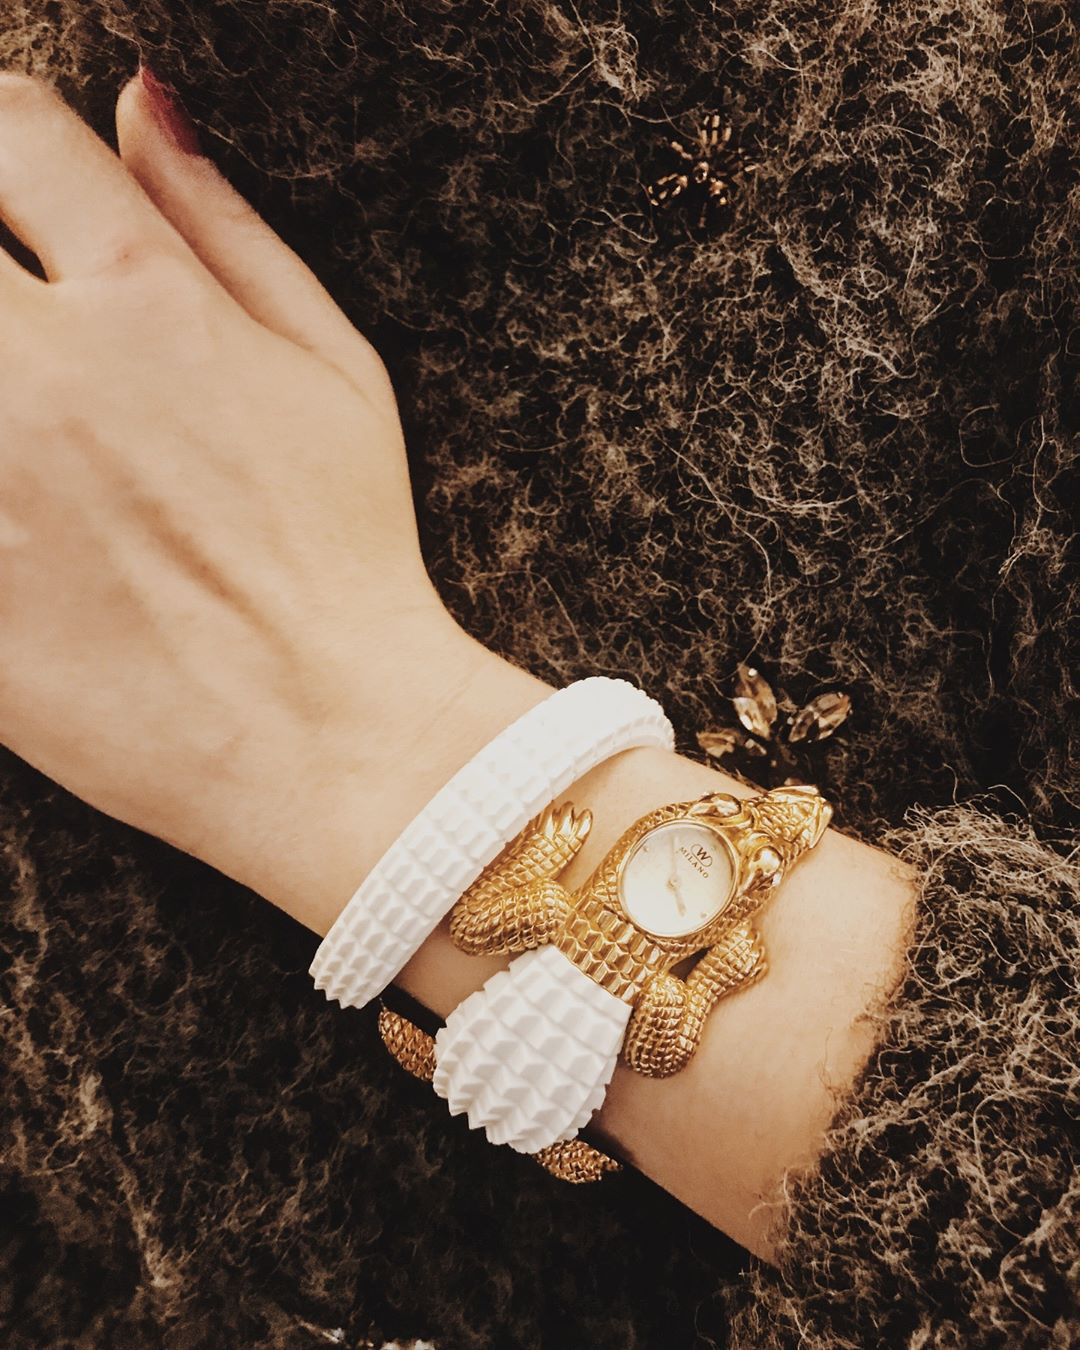 woman wearing white and gold crocodile watch